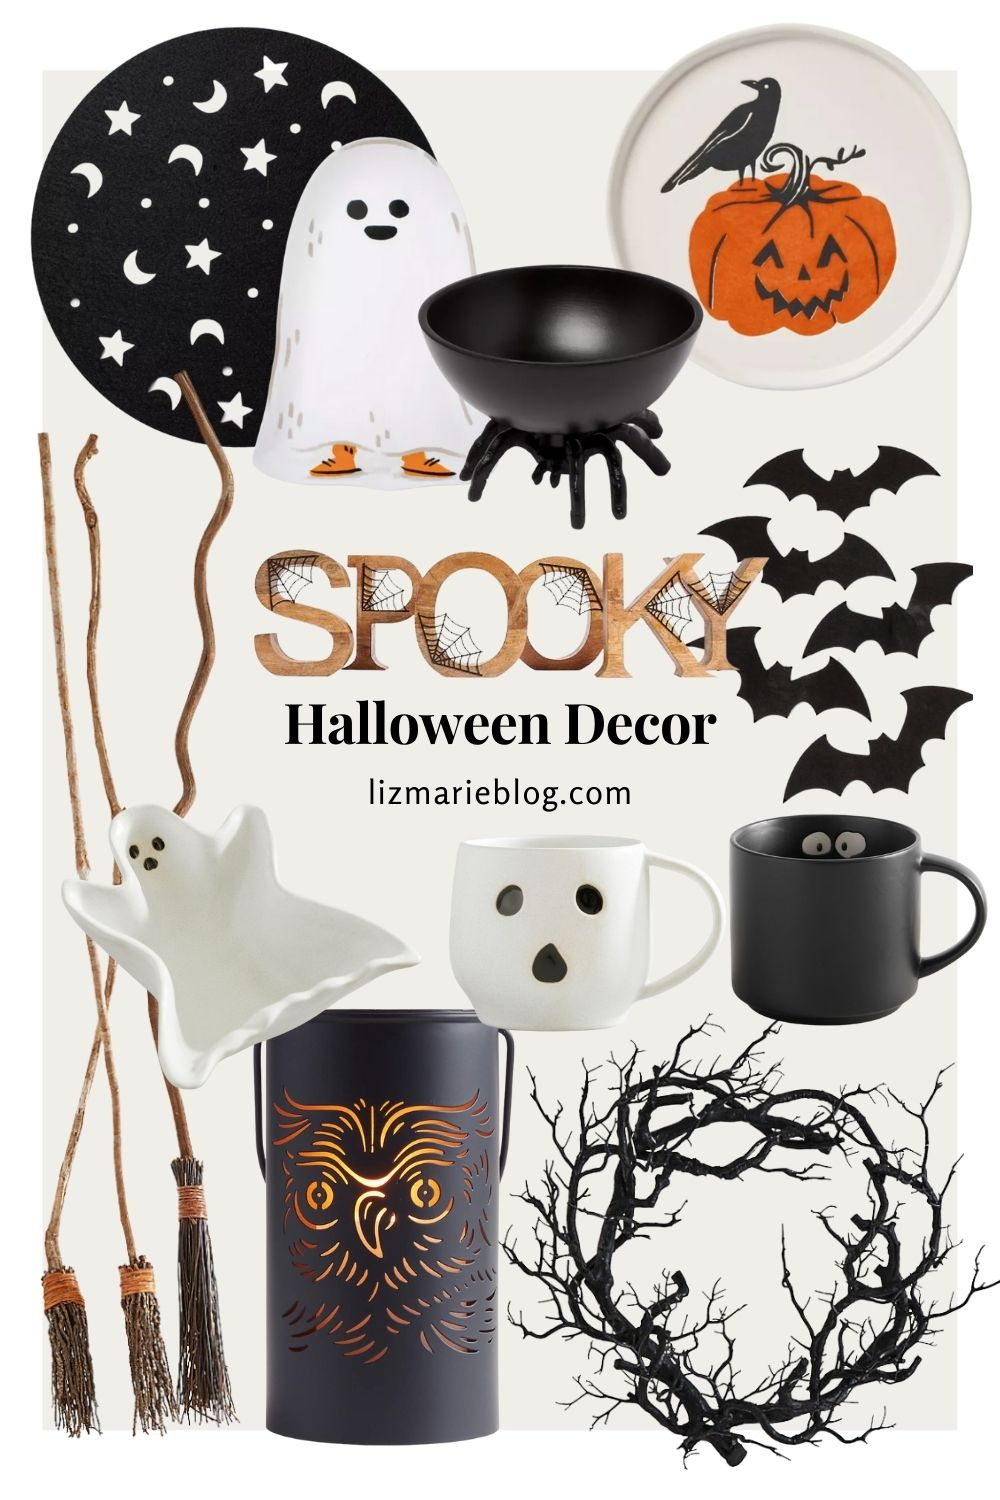 Not-So-Scary Halloween Decor Finds